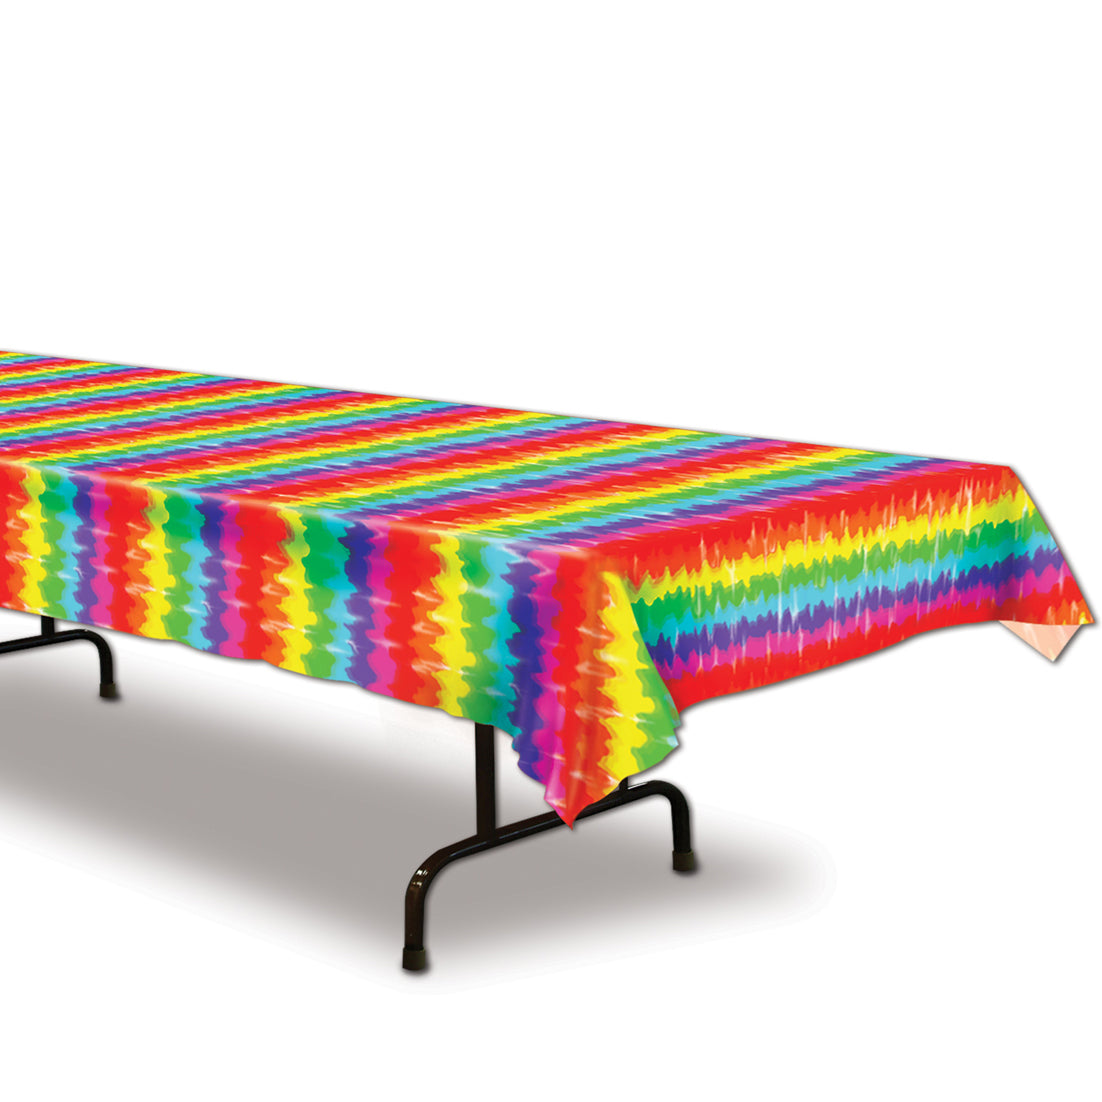 Tie-Dyed Table Cover